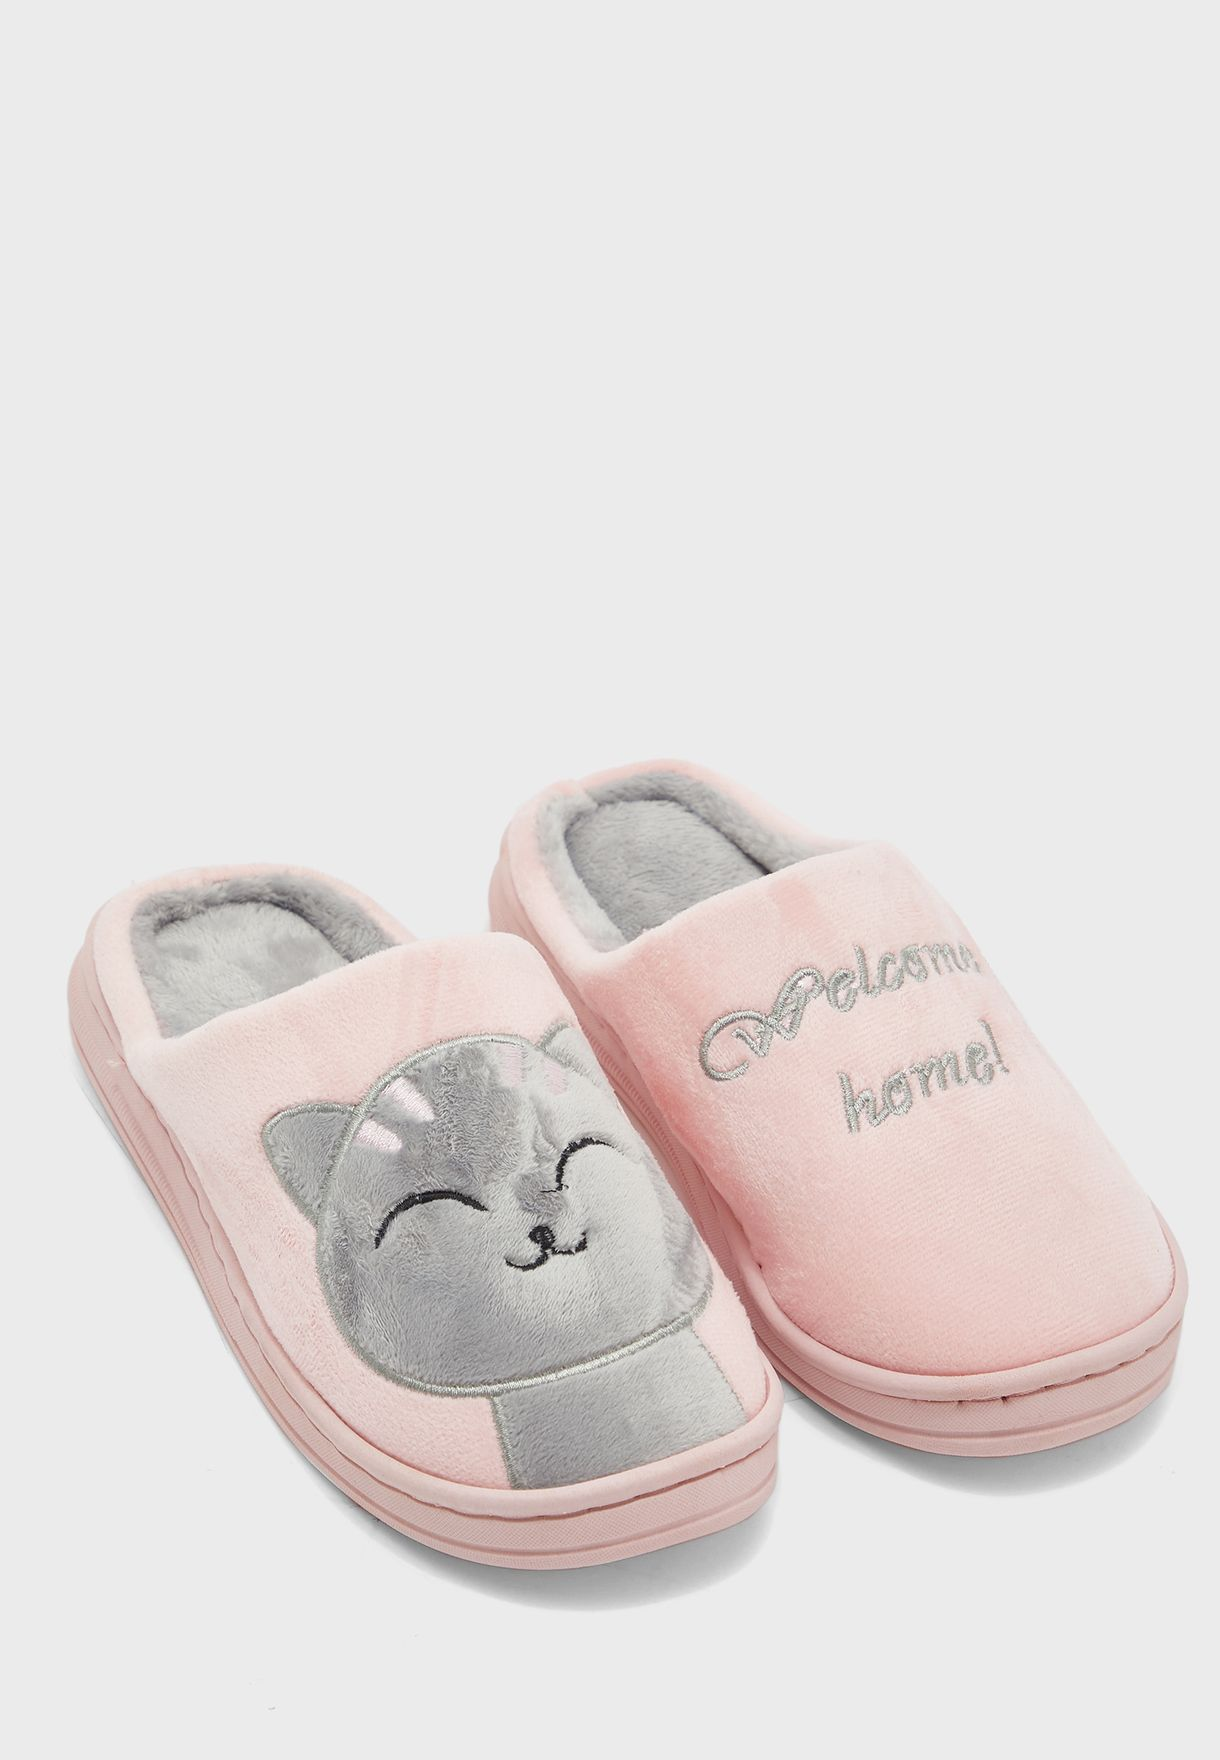 Welcome Home Cat Bedroom Slippers